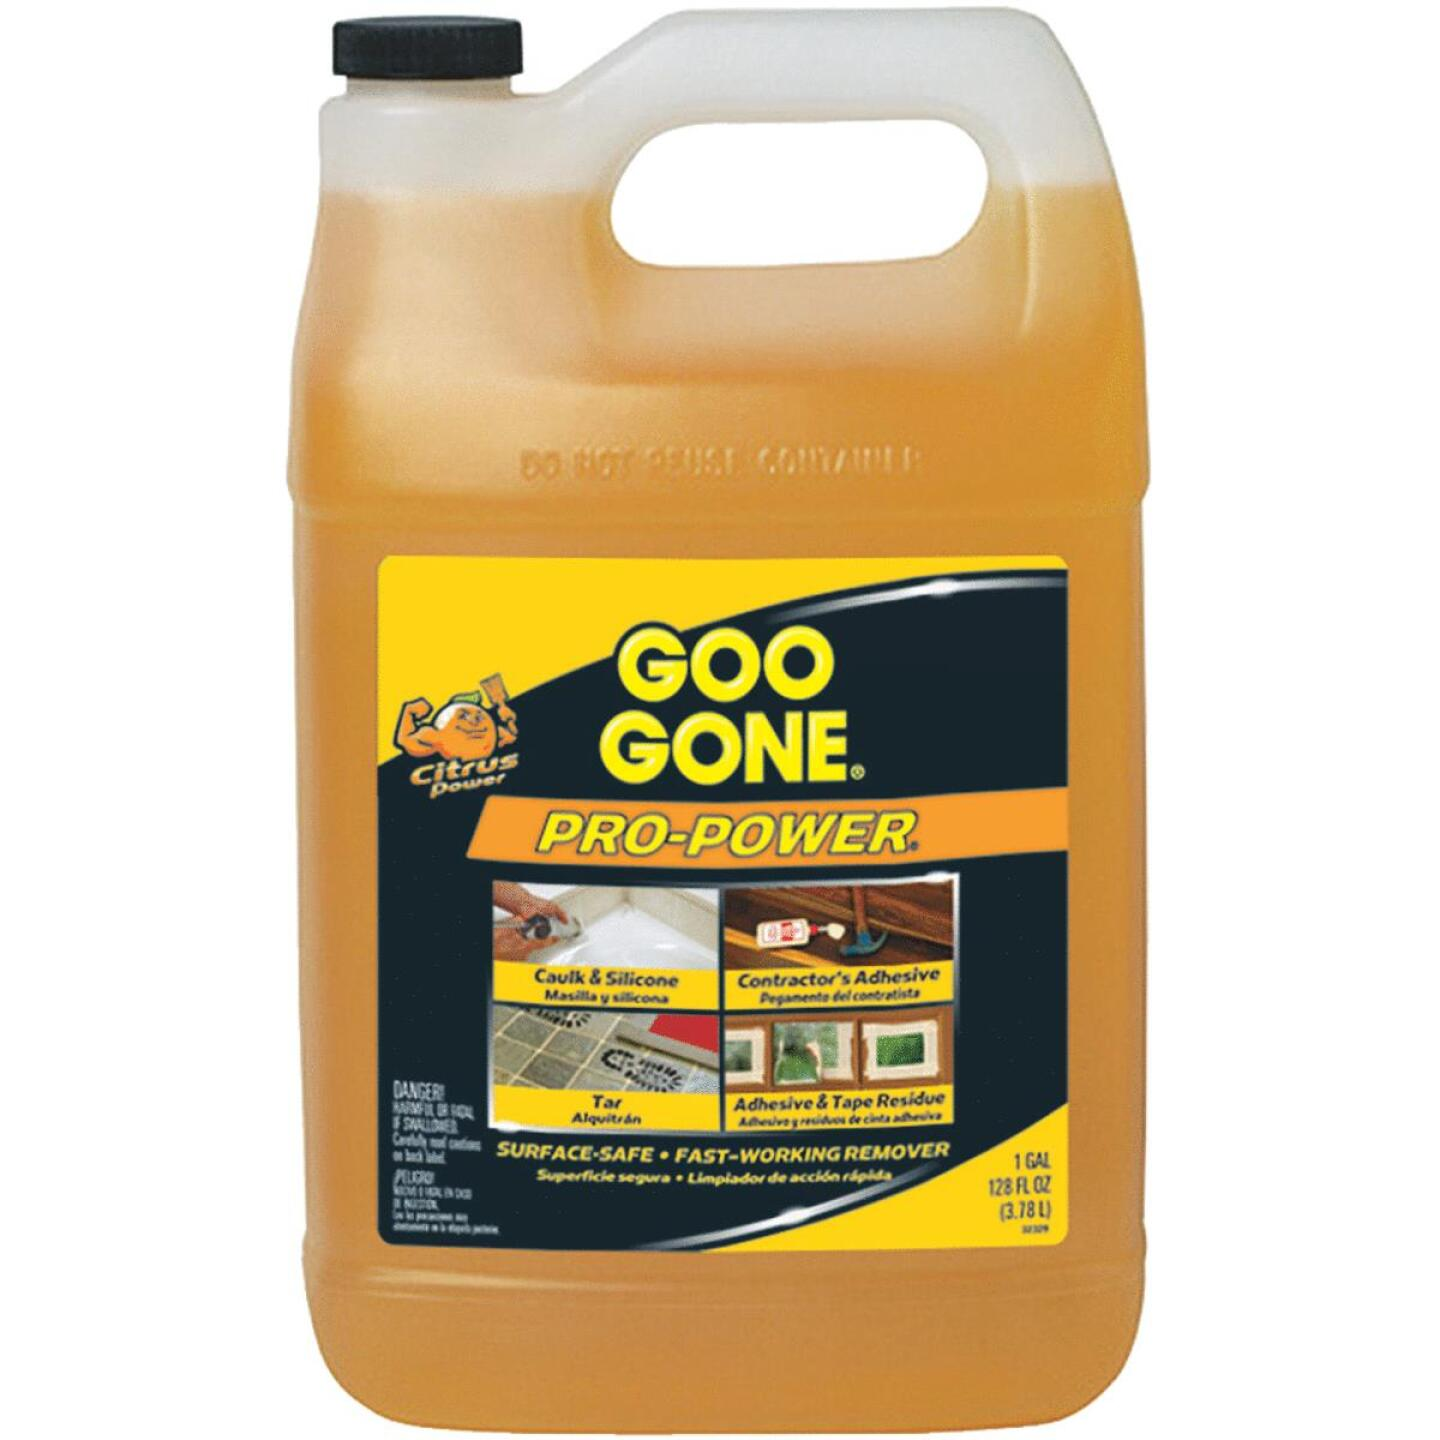 Goo Gone 1 Gal. Pro-Power Adhesive Remover Image 233